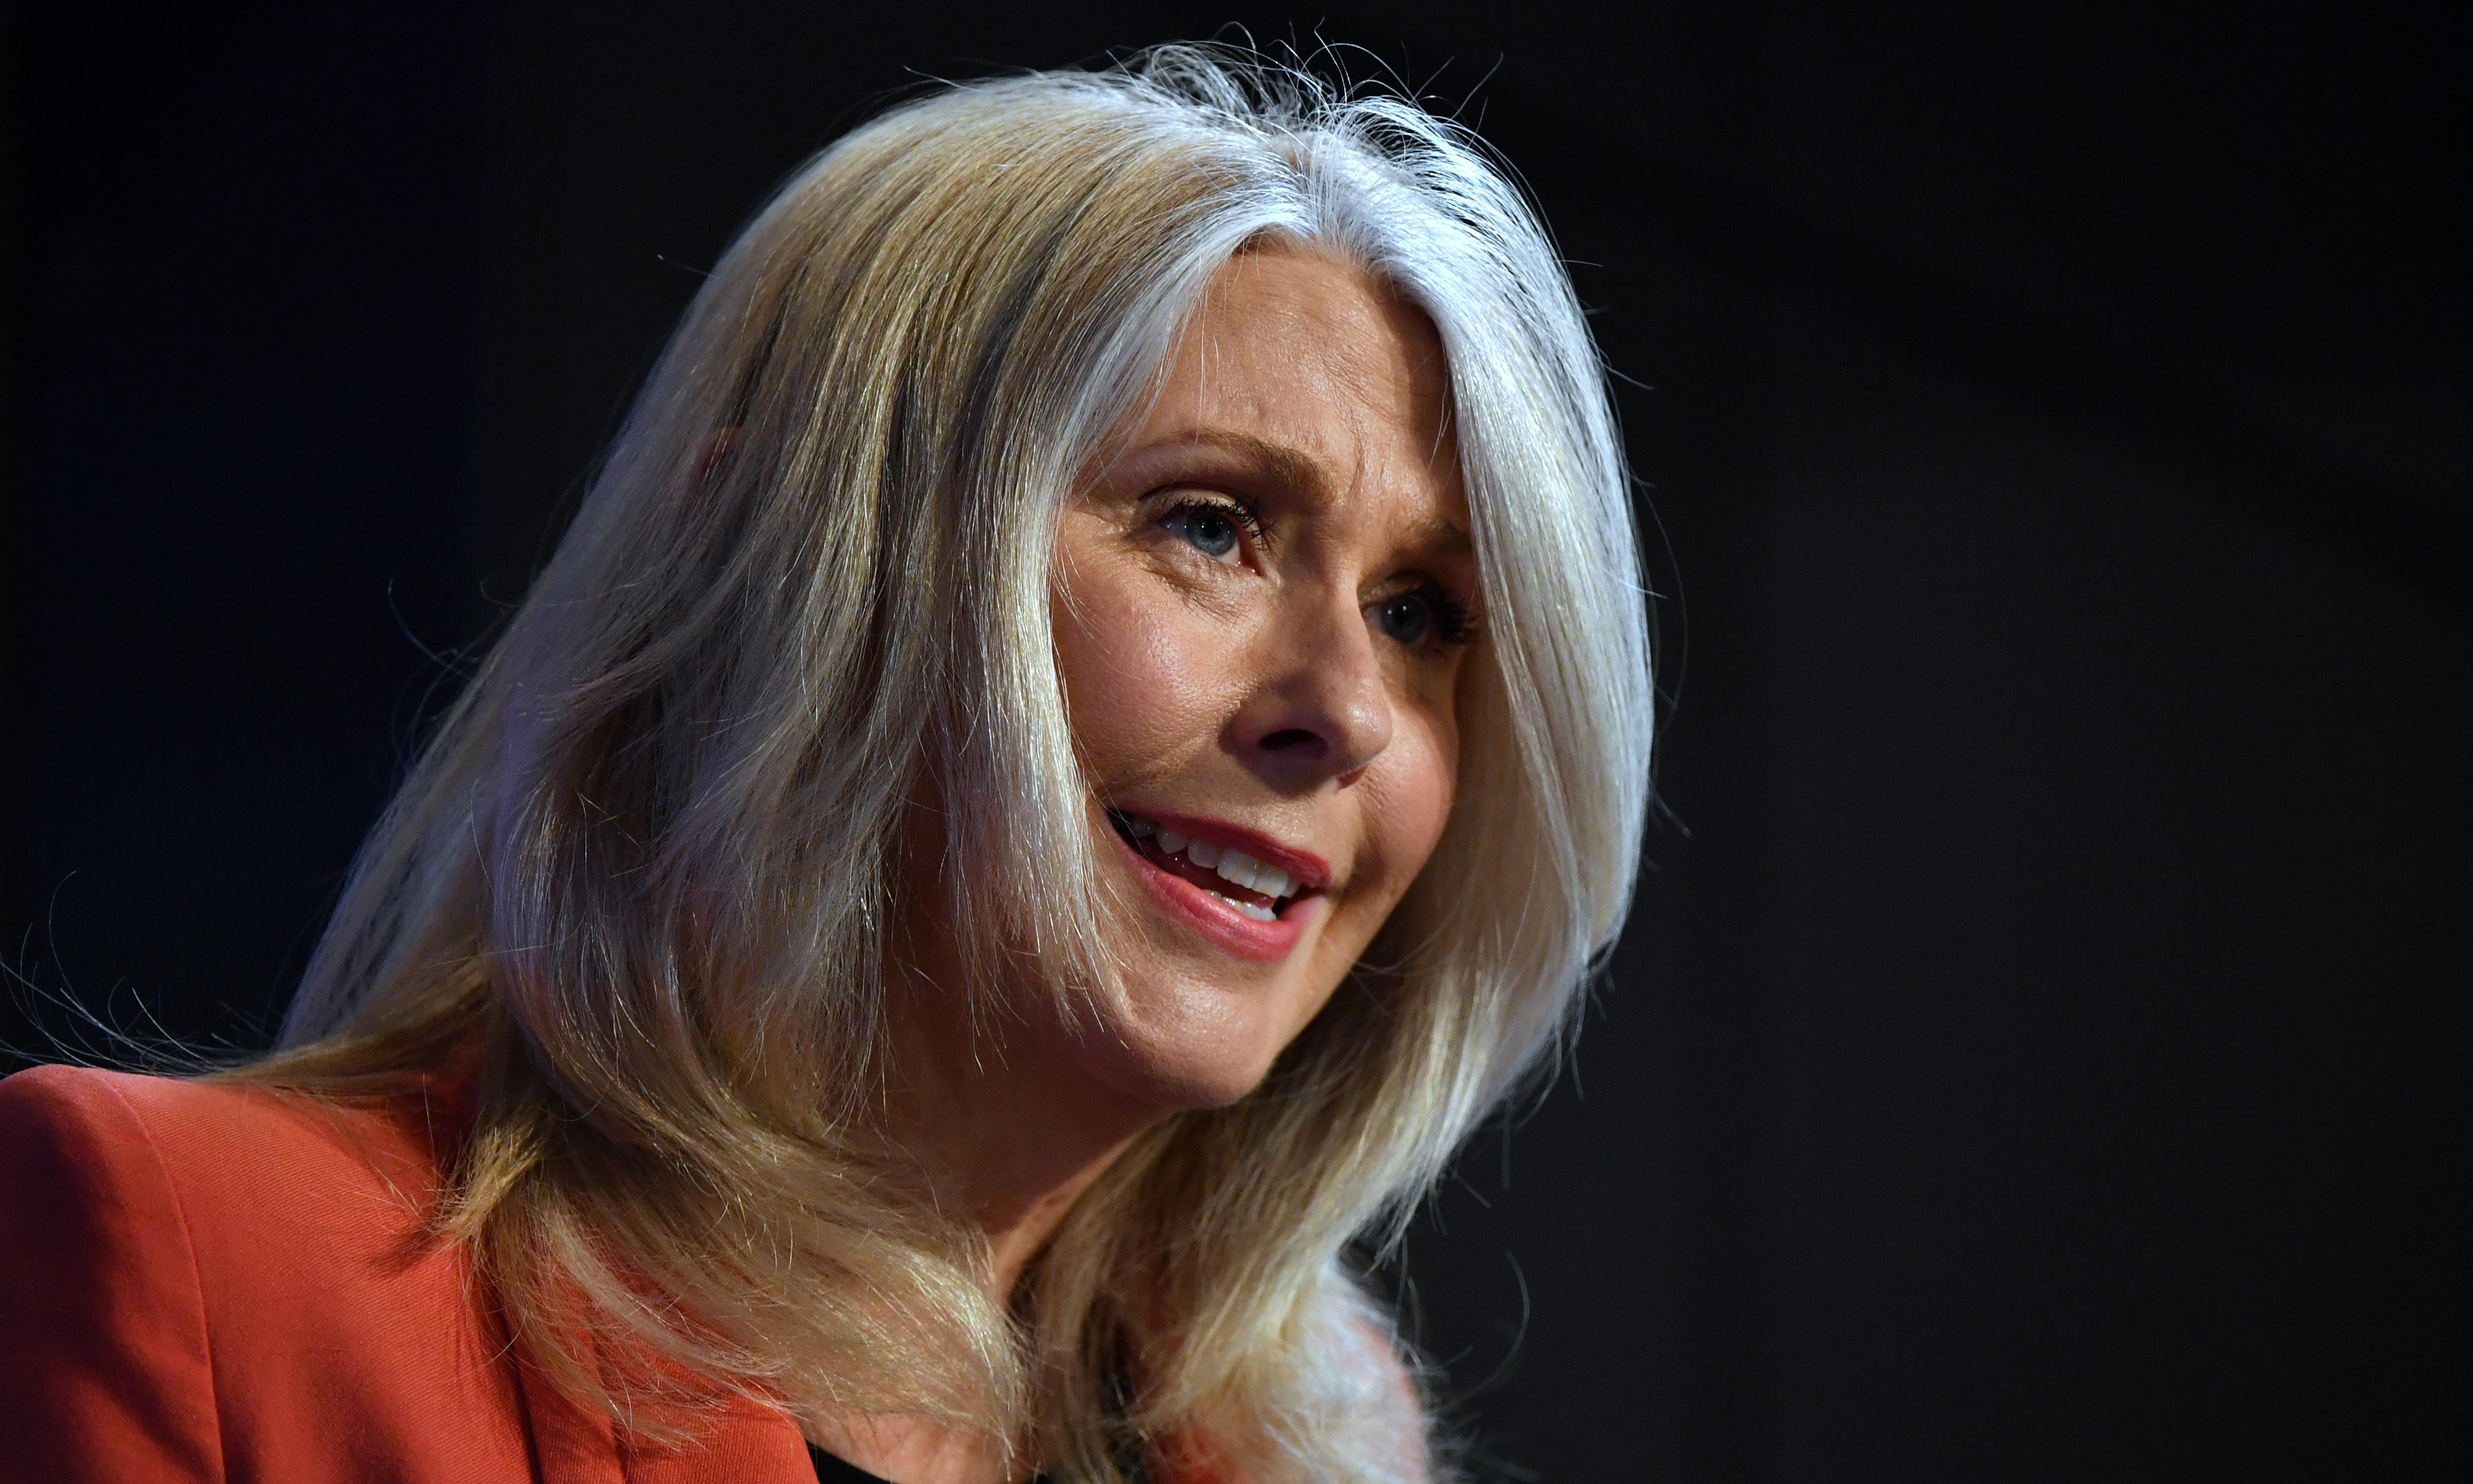 Tracey Spicer accuses three women of defamation after ABC #MeToo documentary